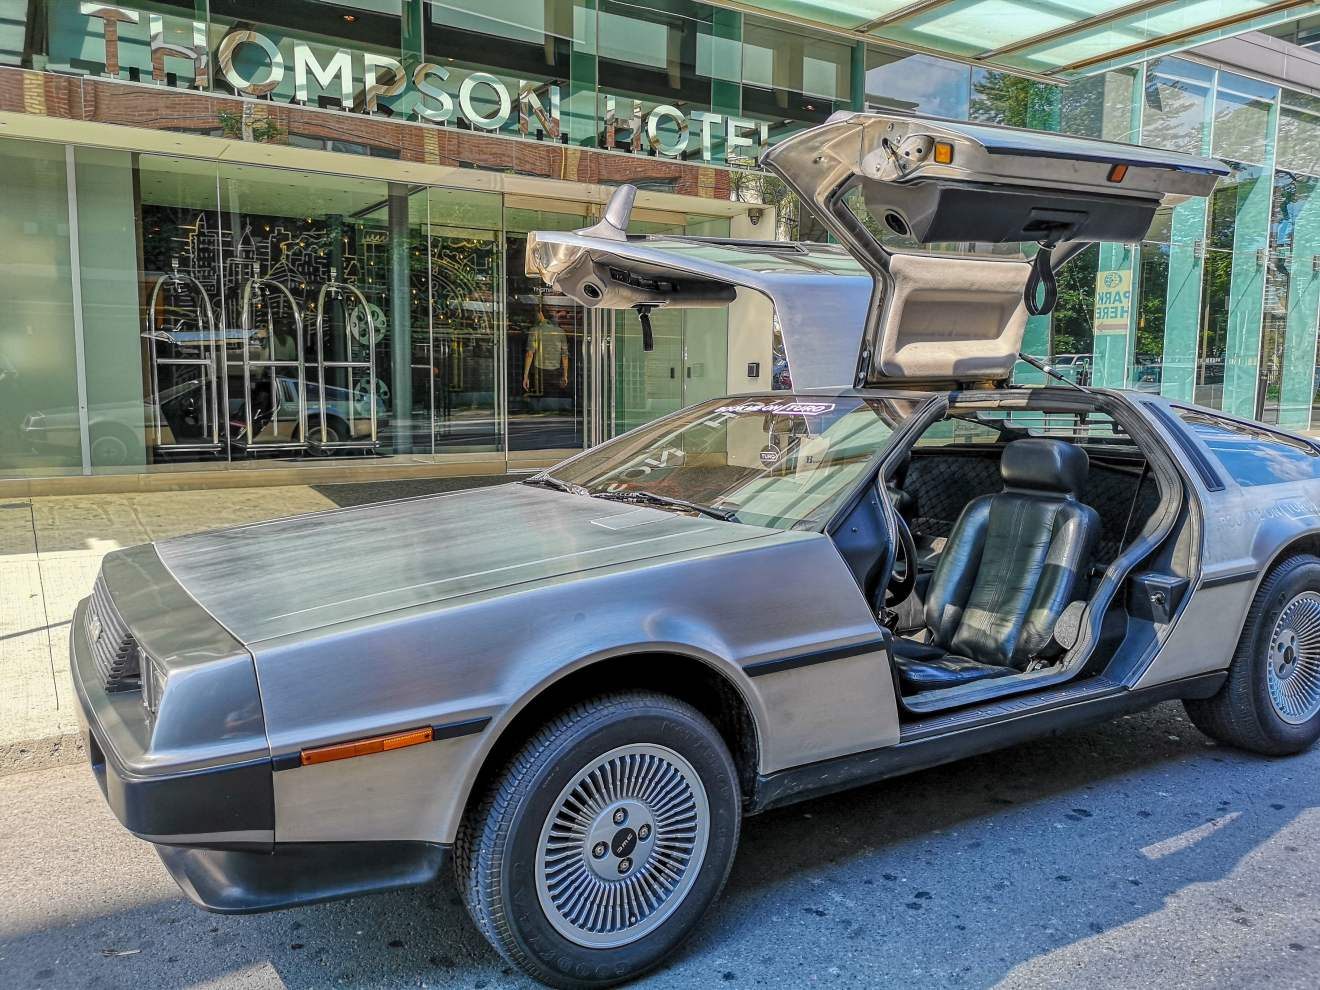 Turo's DeLorean at Bask-It-Style